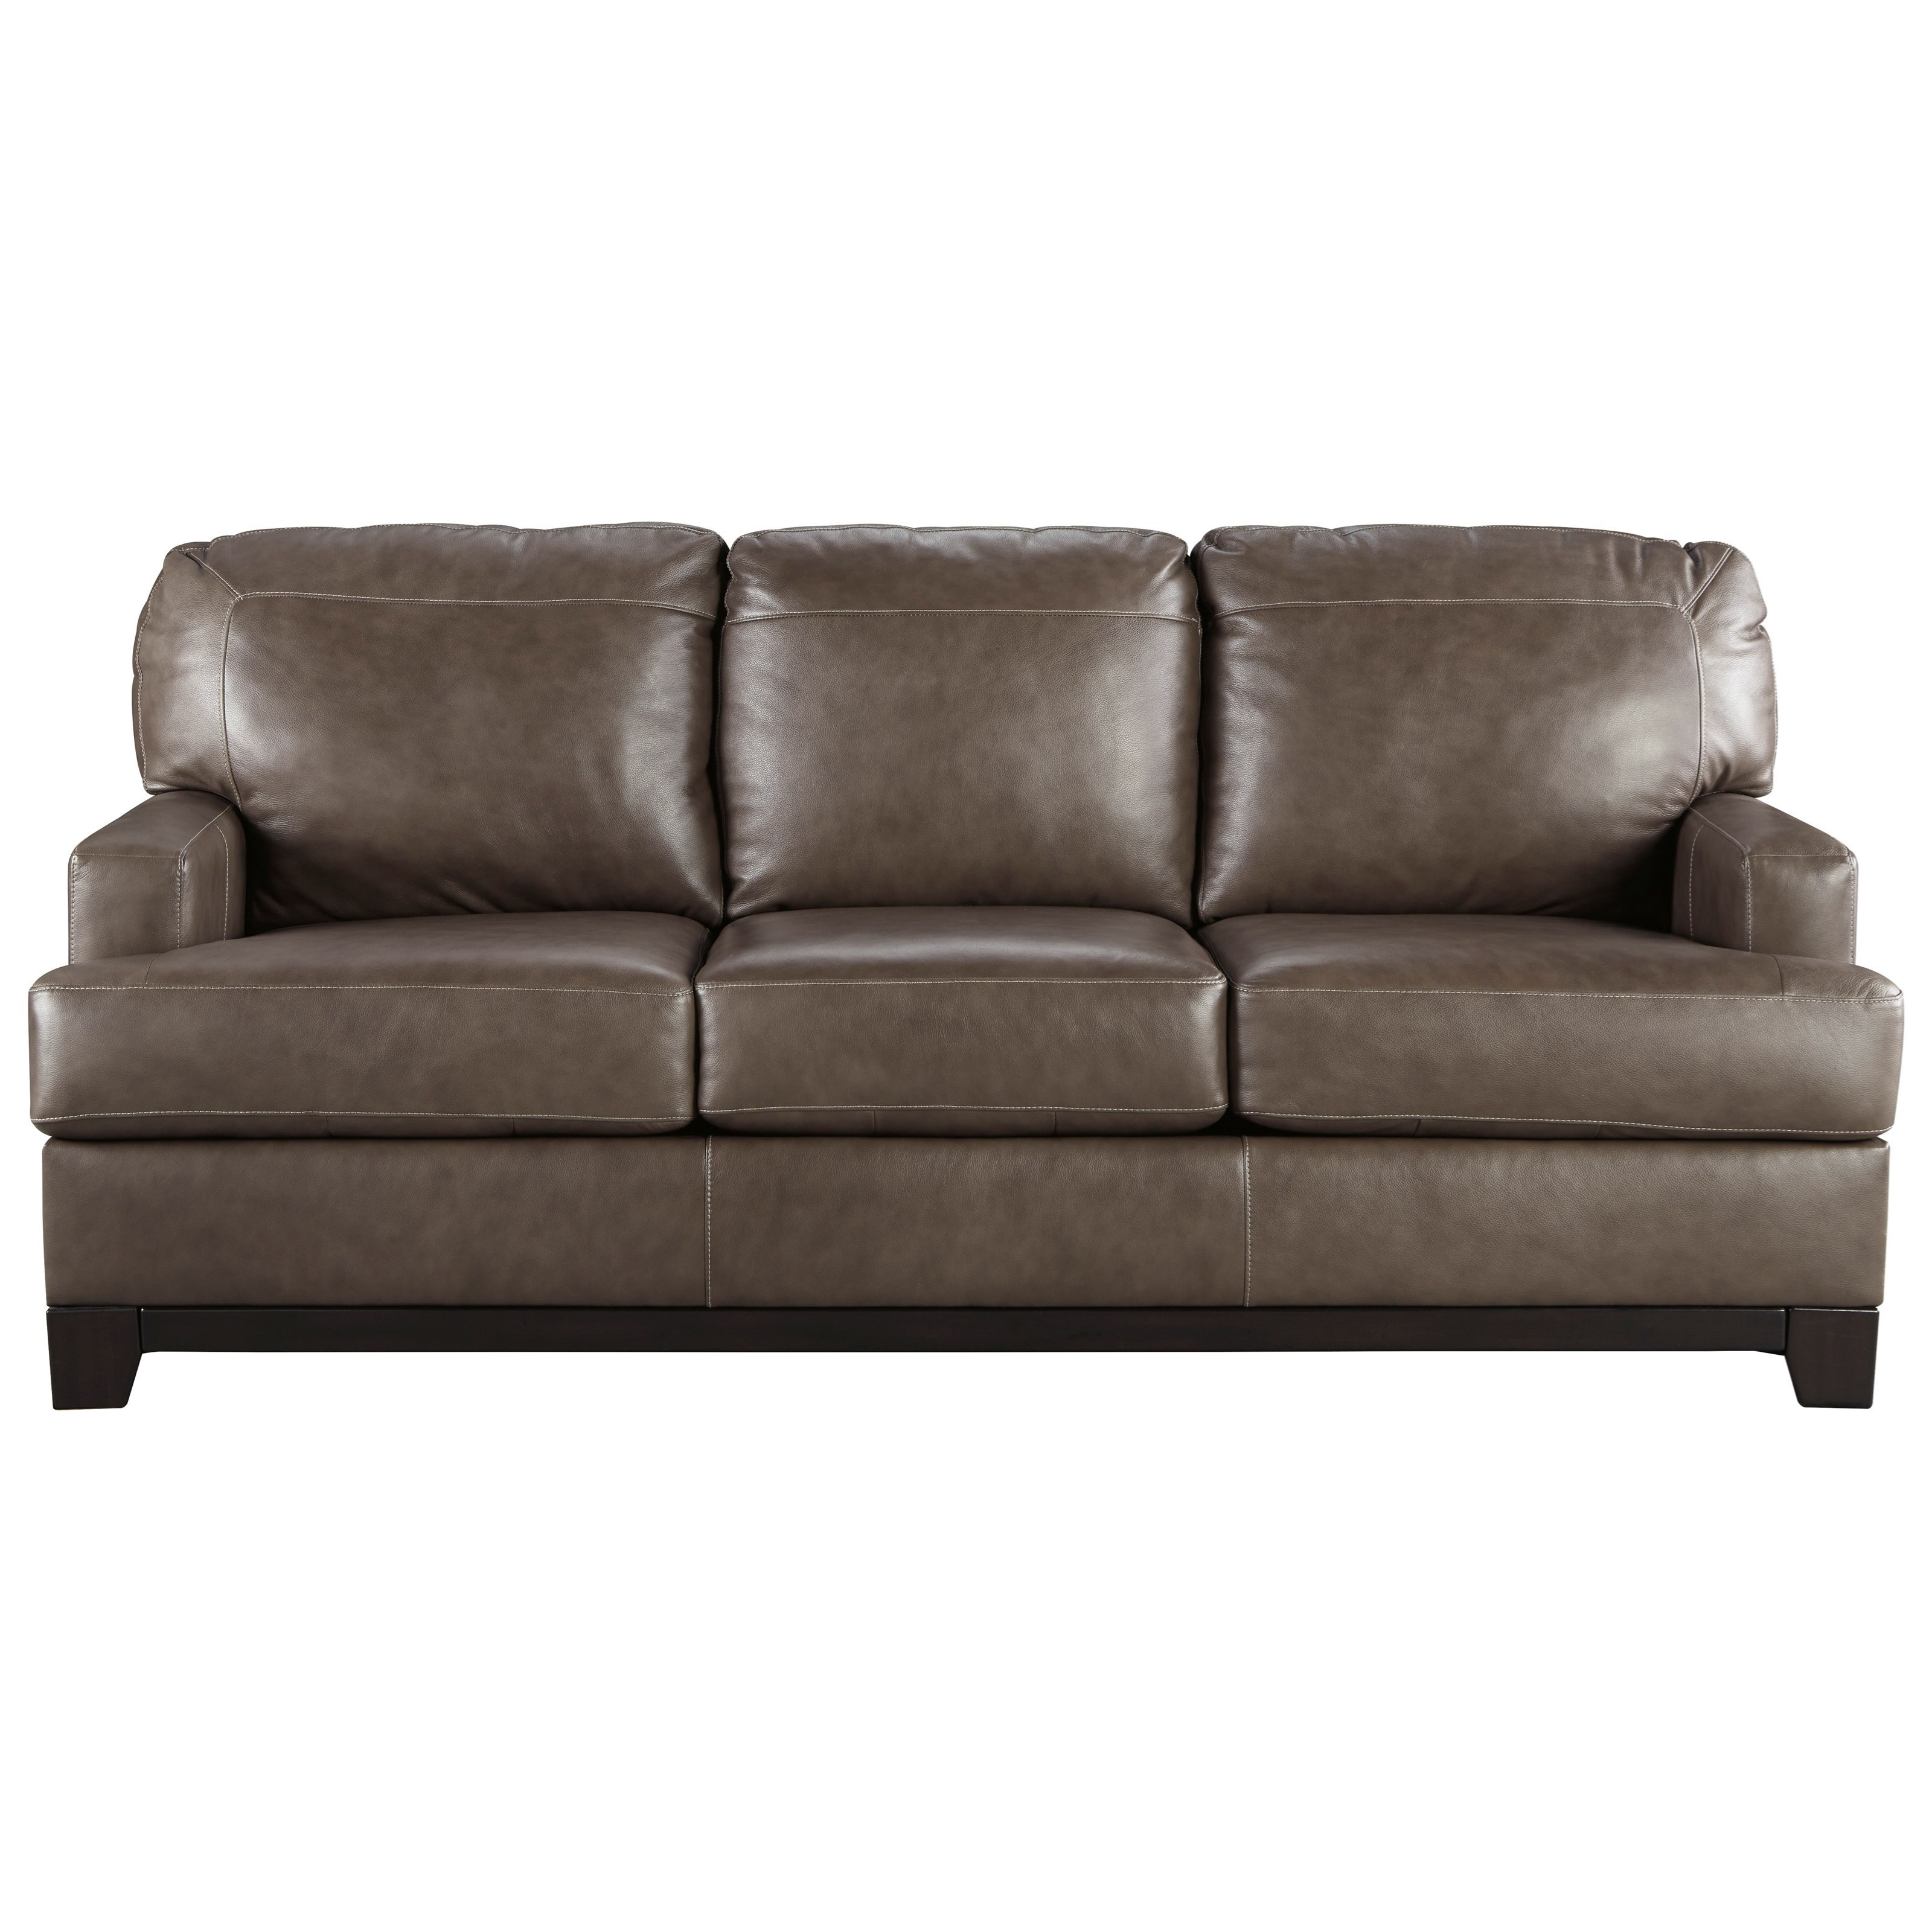 Signature design by ashley derwood contemporary leather match queen sofa sleeper rotmans Sleeper sofa uk